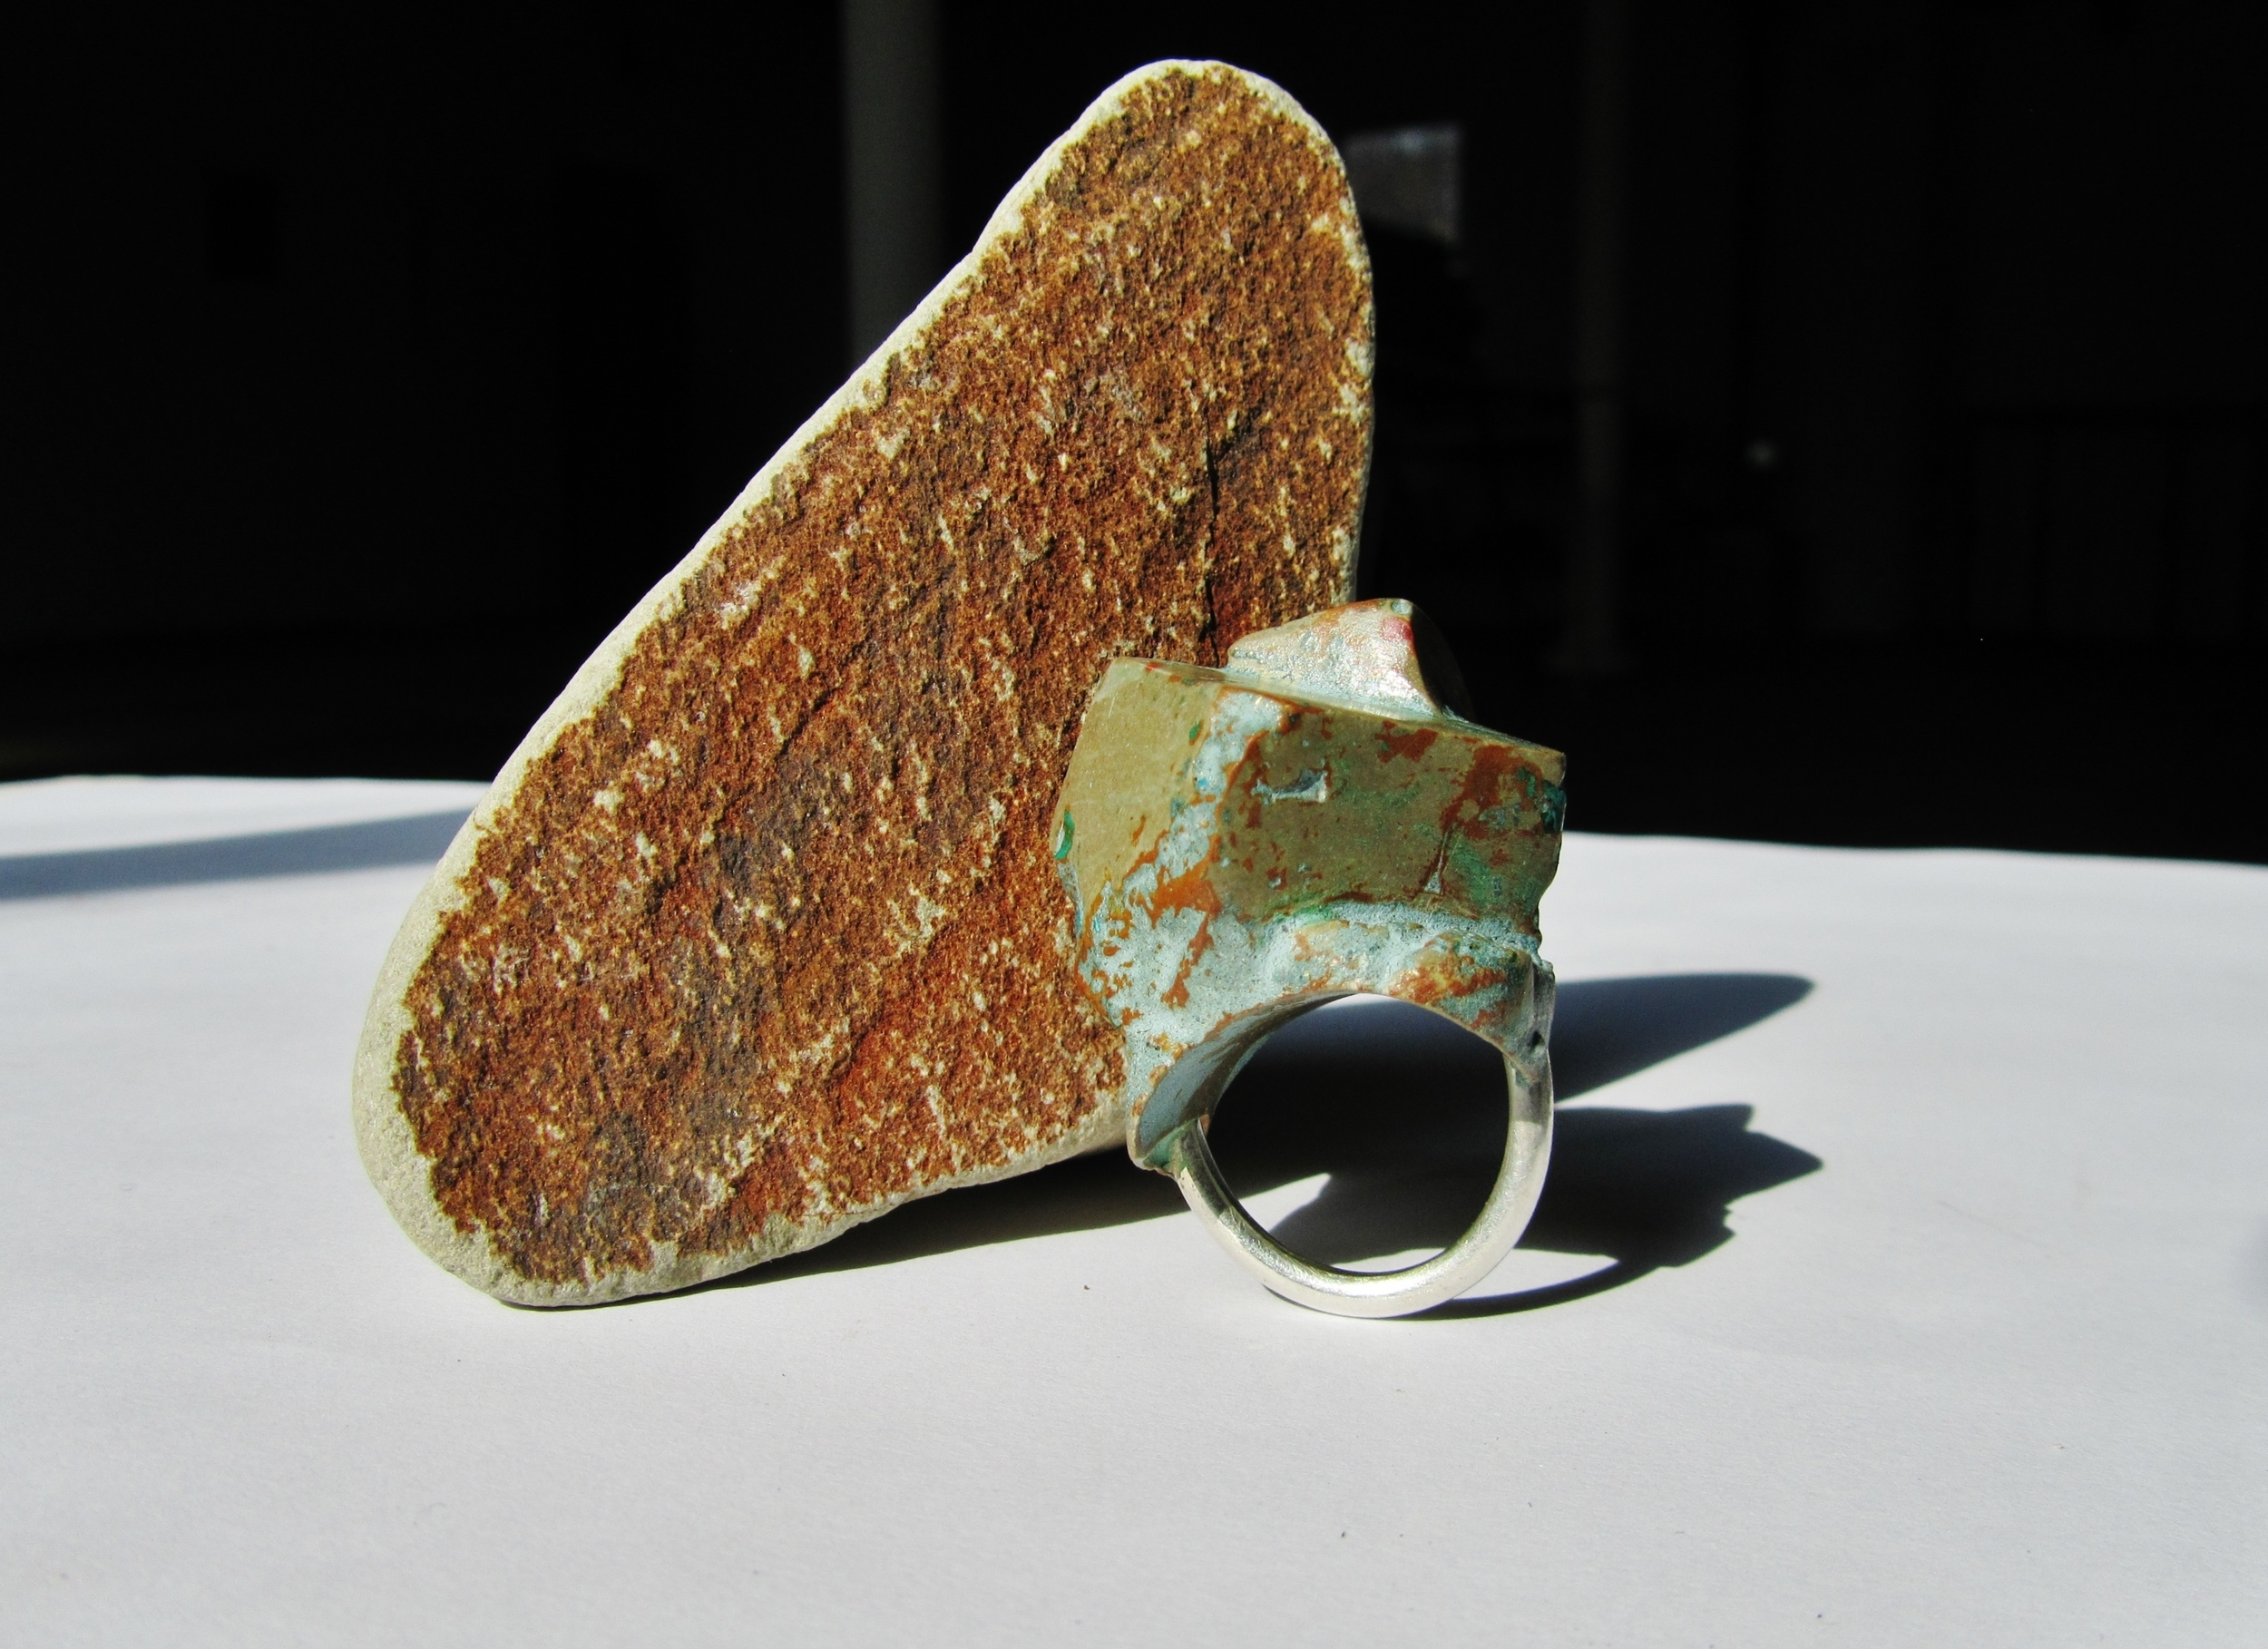 The patina of weathered copper as it is exposed to the elements is the inspiration behind this rugged square ring of resin and silver.